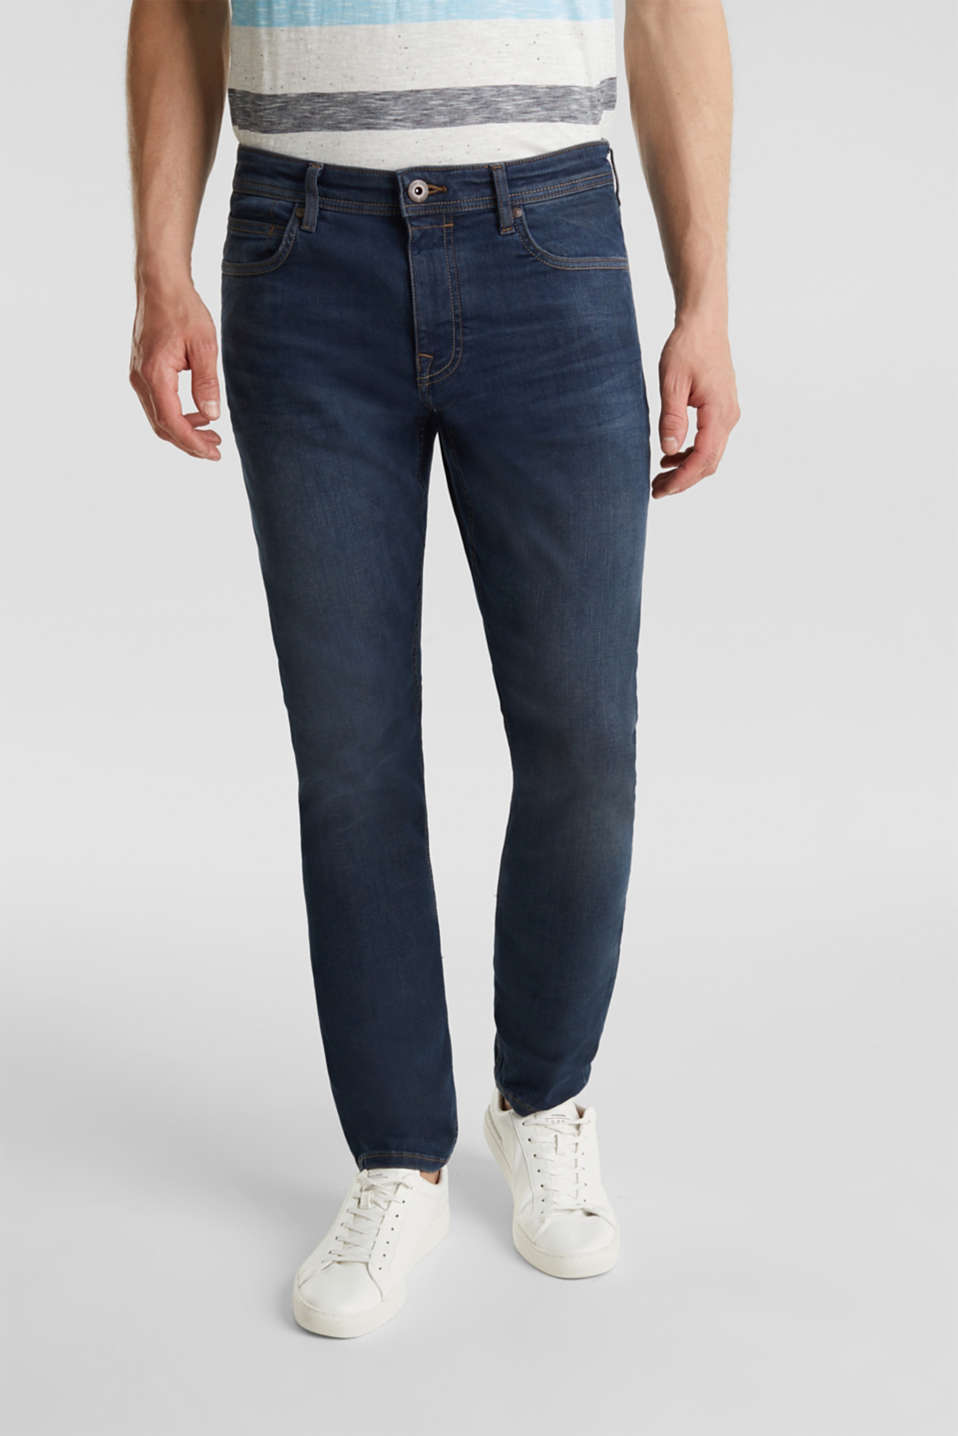 Esprit - Denim met veel stretch en een basic look